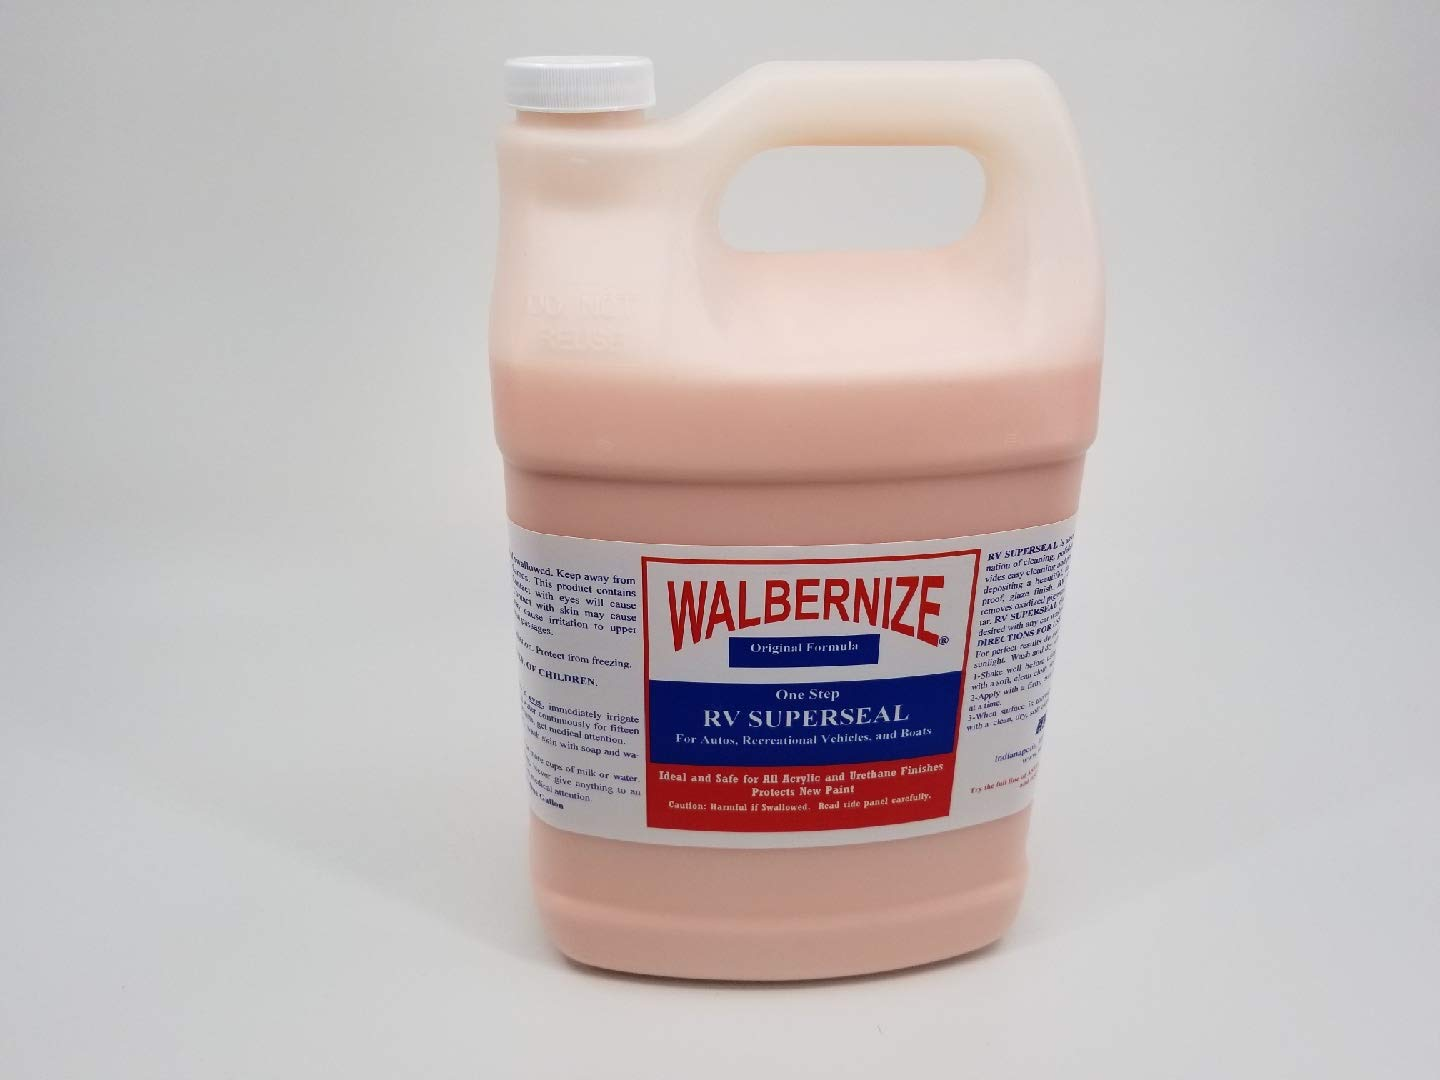 Walbernize RV Super Seal for Autos, RVs, Airstream, Boats, Planes to Protect New Paint 1 Gallon Container